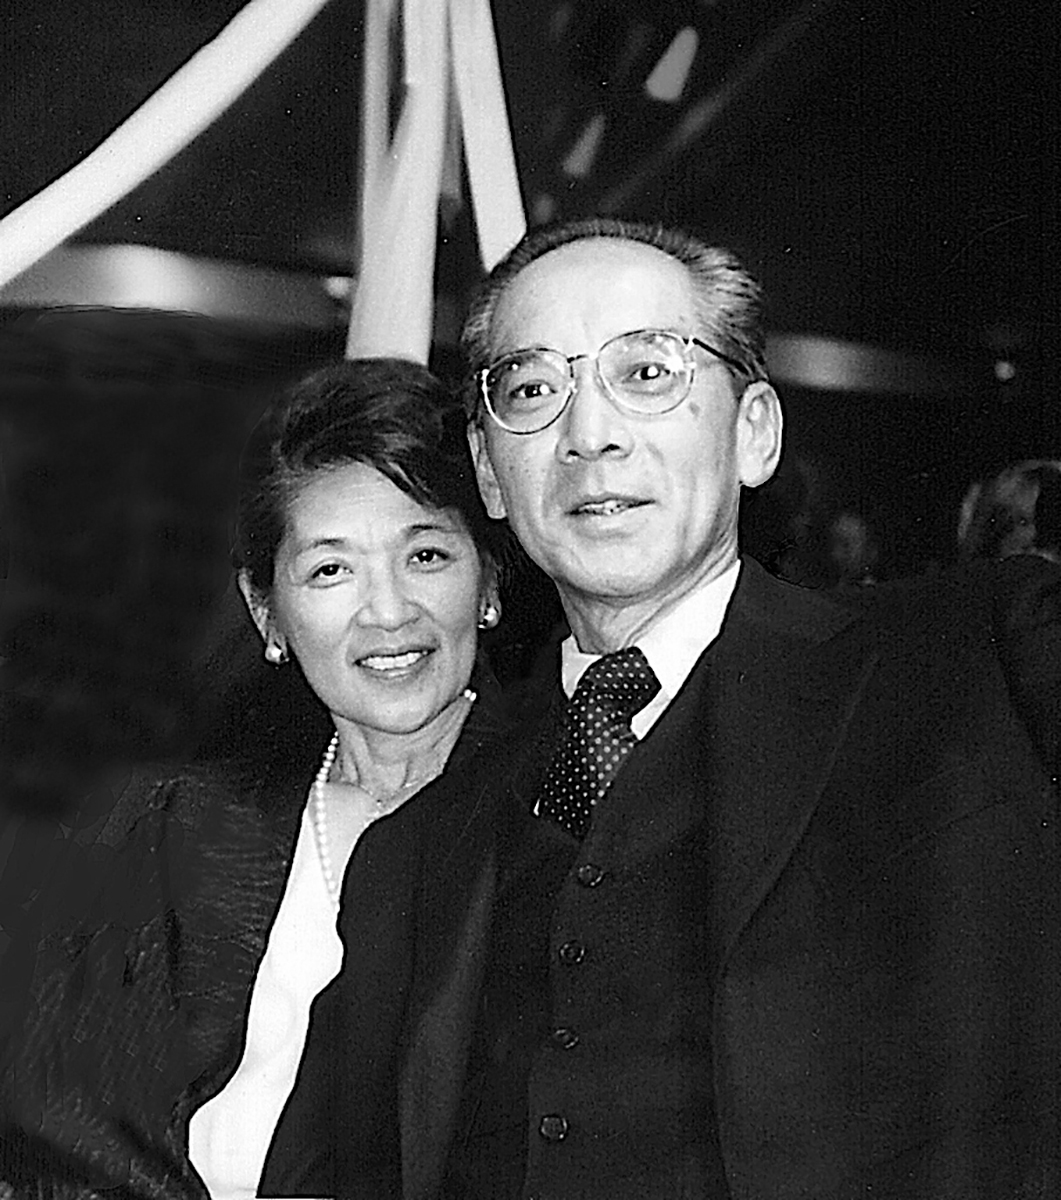 Emma Gee and Yuji Ichioka among charter founders and early supporters honored in 1999 at the 30th anniversary celebration of the establishment of the Asian American Studies Center at UCLA.